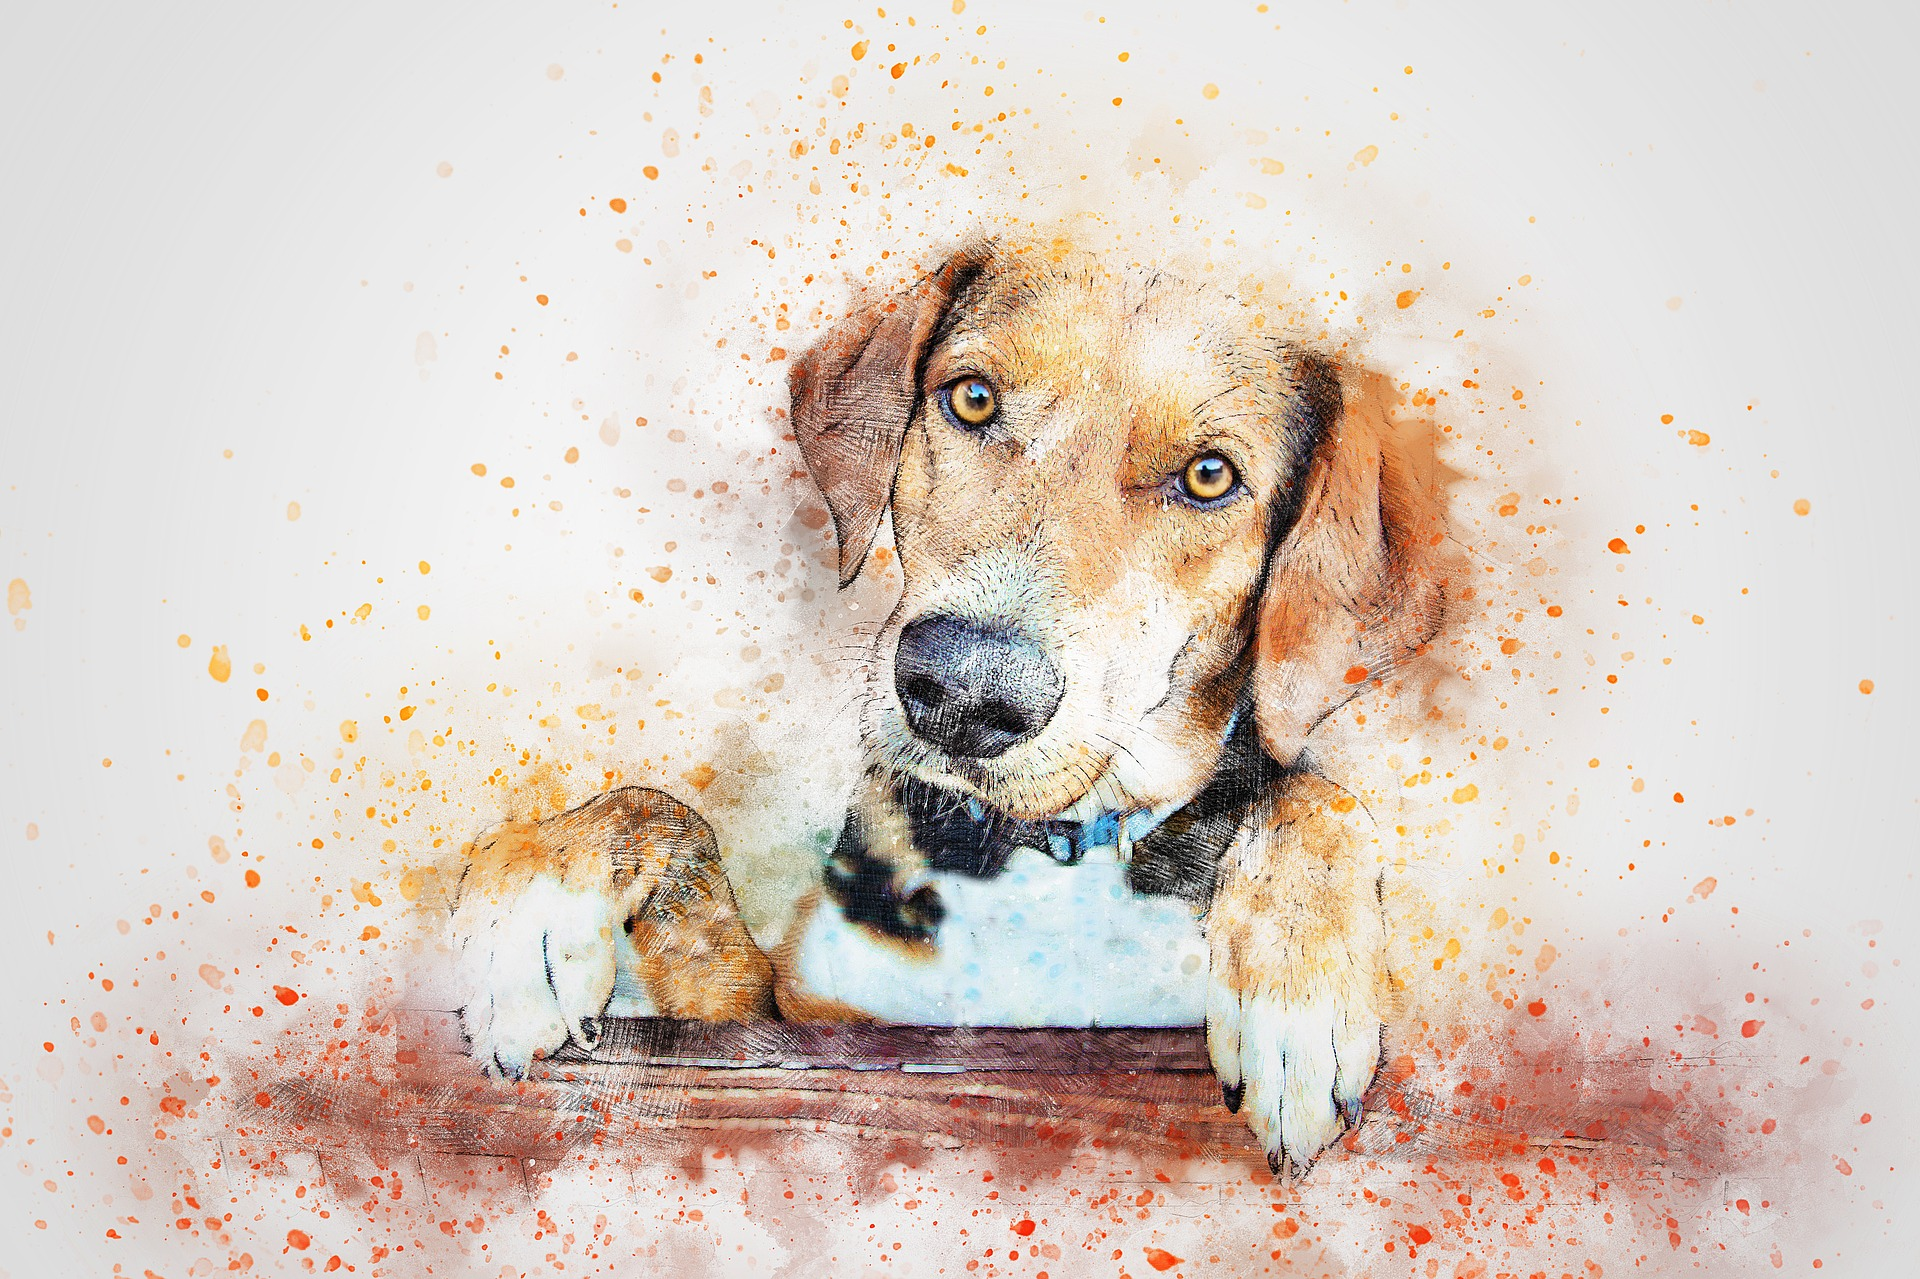 What's Your Mutt DNA Portrait painting of a hound dog with its paws up on a table